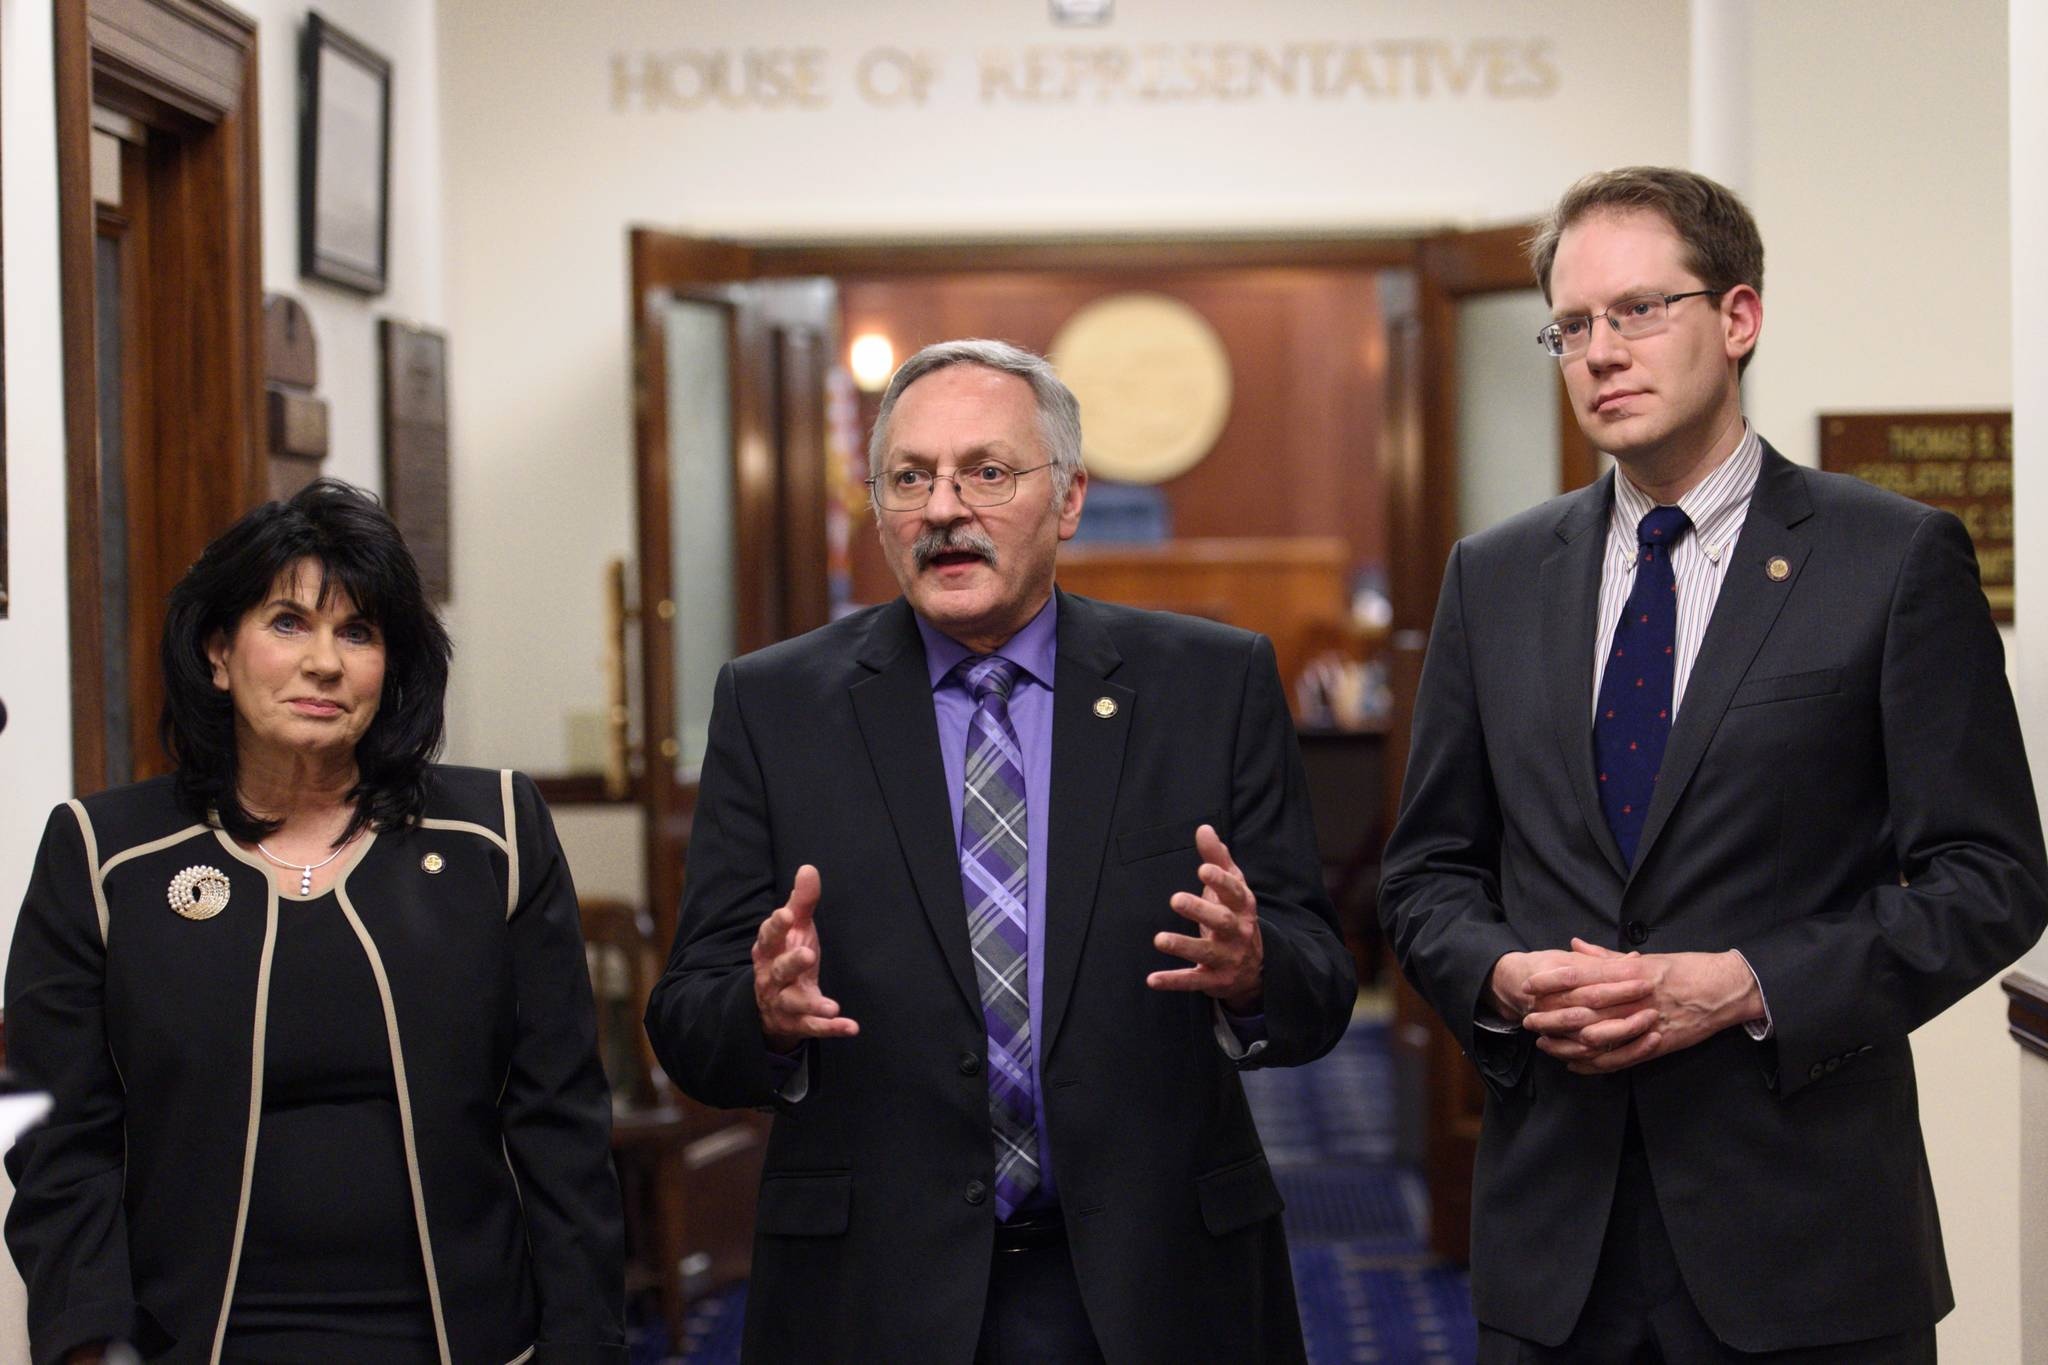 House Republicans Cathy Tilton, left, David Talerico, center, and Lance Pruitt speak to the press outside the House chambers after Gov. Mike Dunleavy's State of the State speech on Tuesday. (Michael Penn | Juneau Empire)